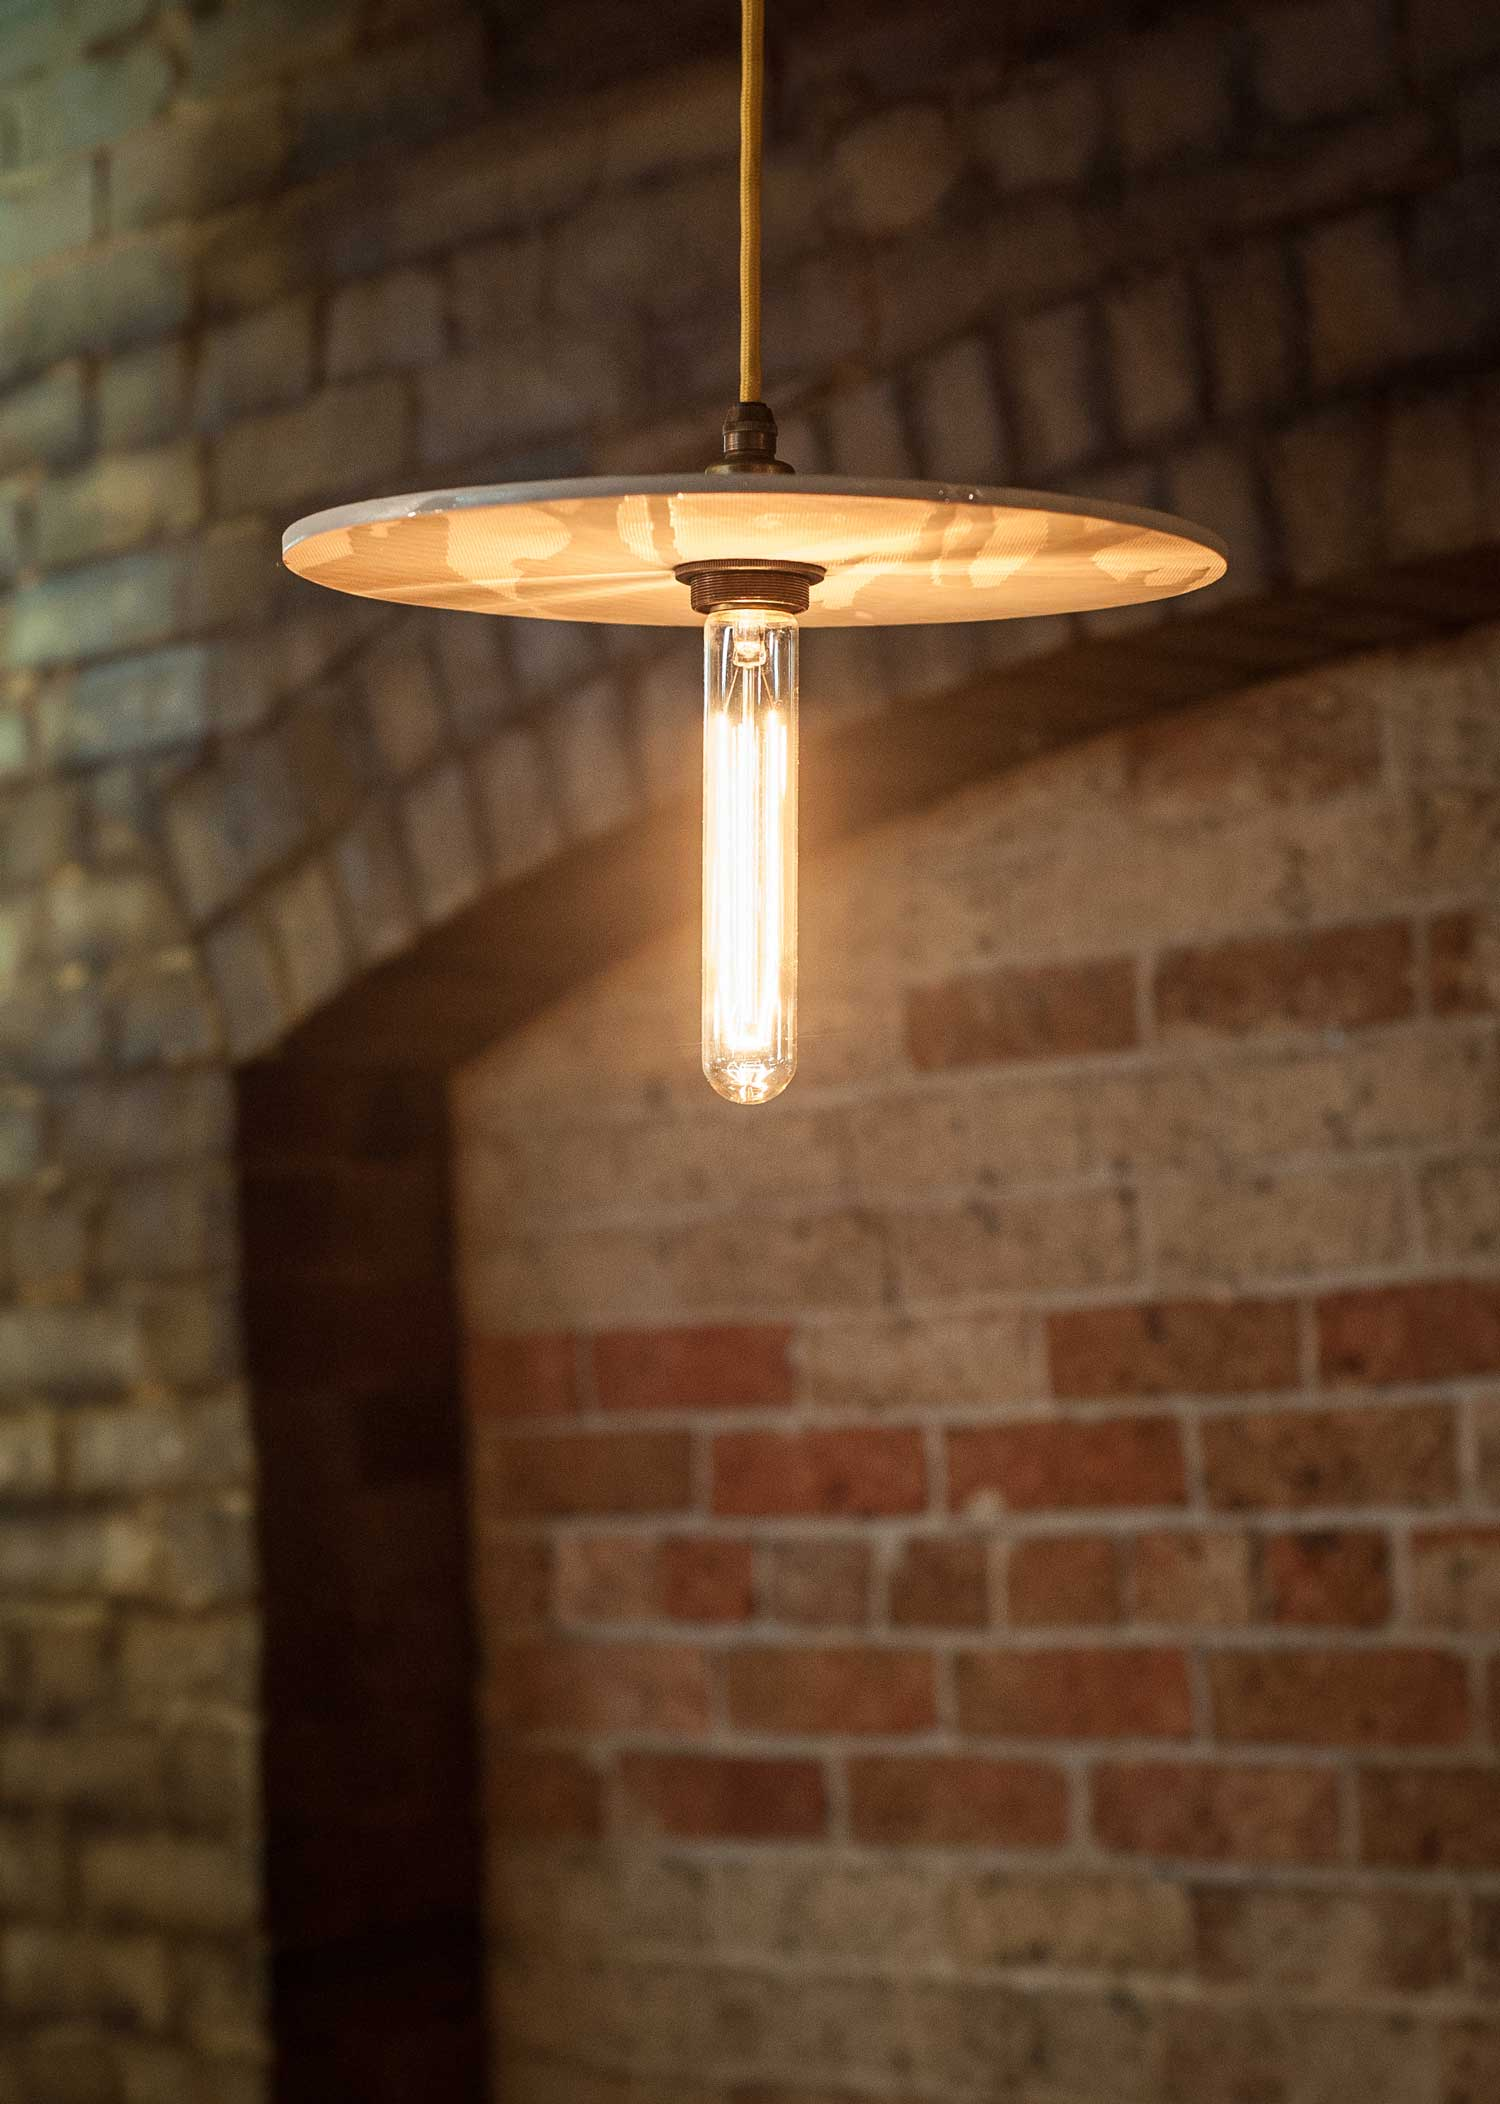 New Light by Studio Ham | Yellowtrace